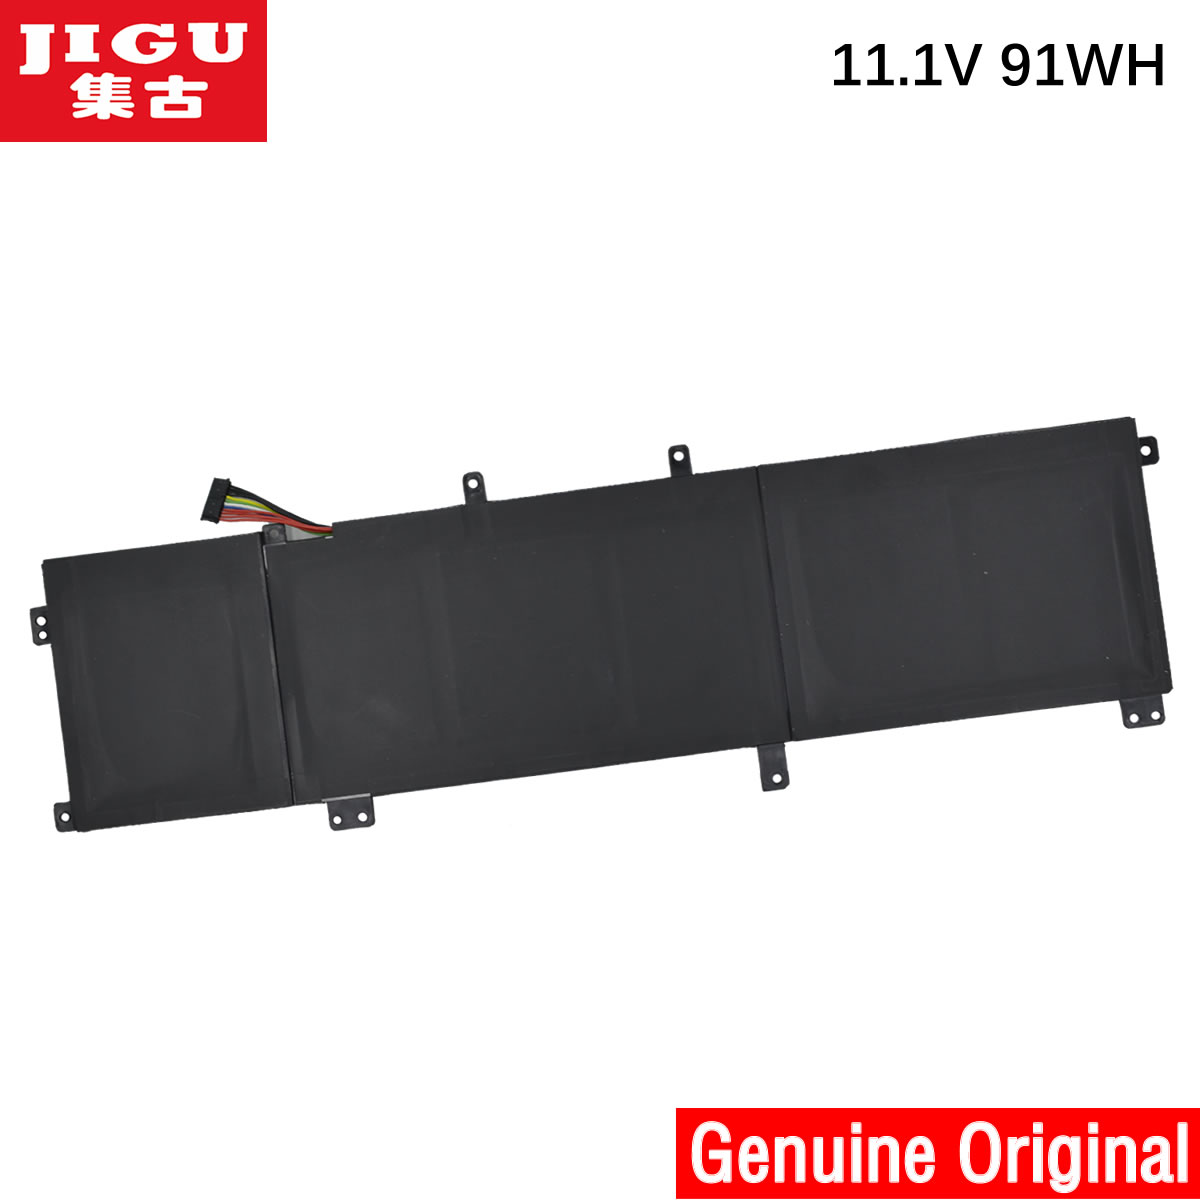 все цены на  JIGU New Genuine 11.1V 91Wh 245RR 701WJ 7D1WJ ORIGINAL BATTERY For Dell Precision M3800 XPS 15 9530  онлайн